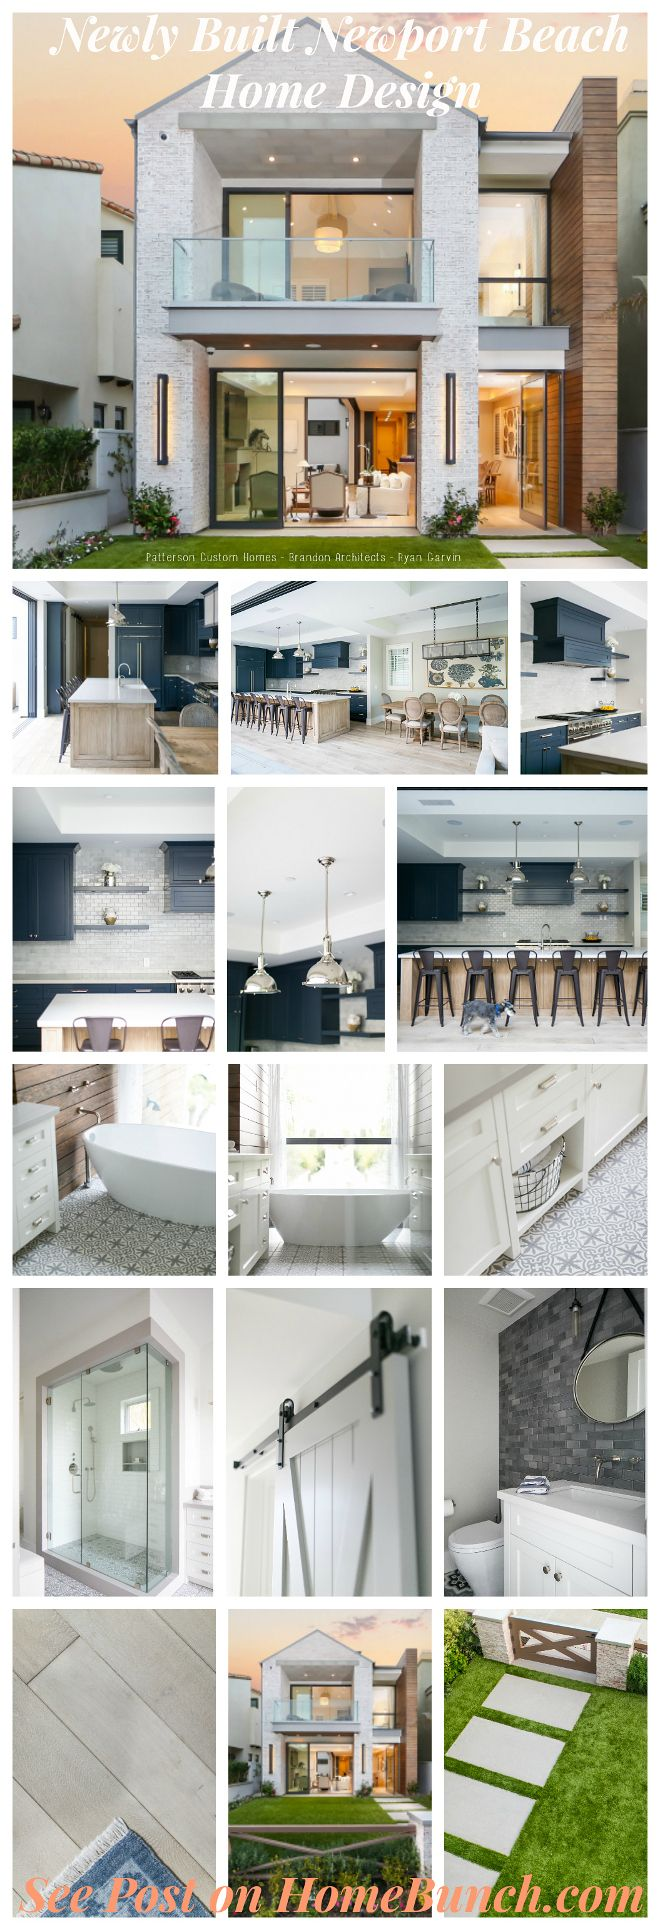 142 best house styles images on pinterest house styles